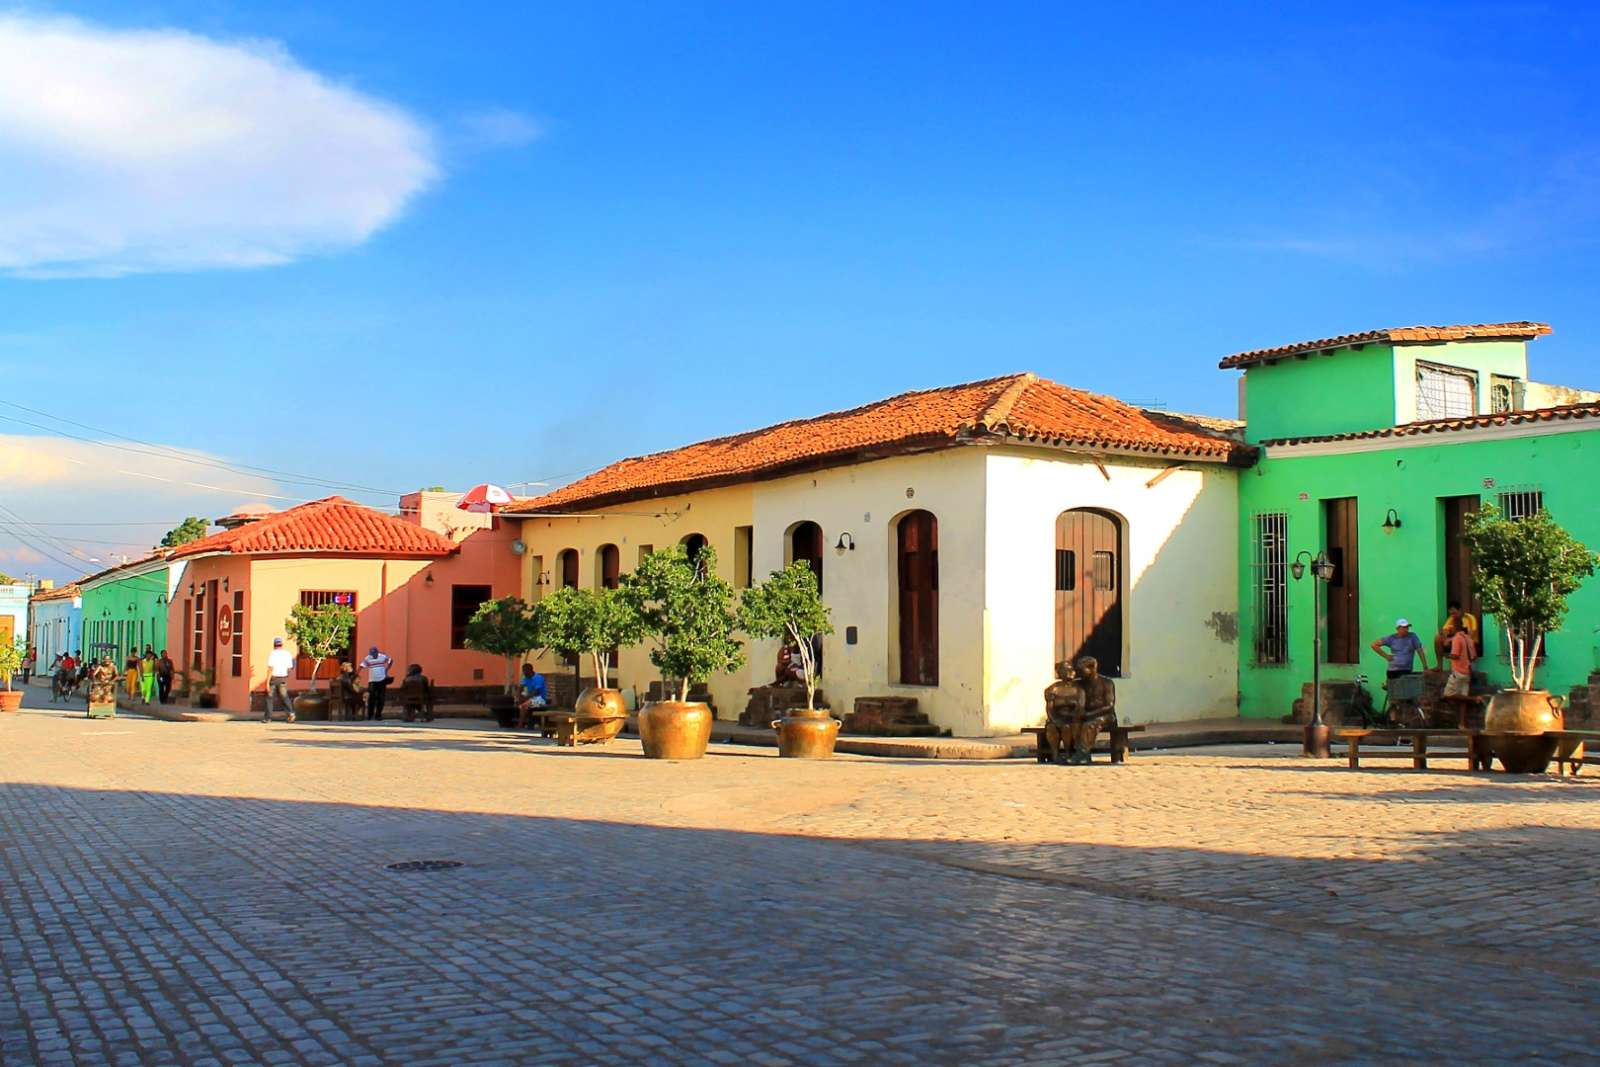 A colourful block of buildings in Camaguey, Cuba